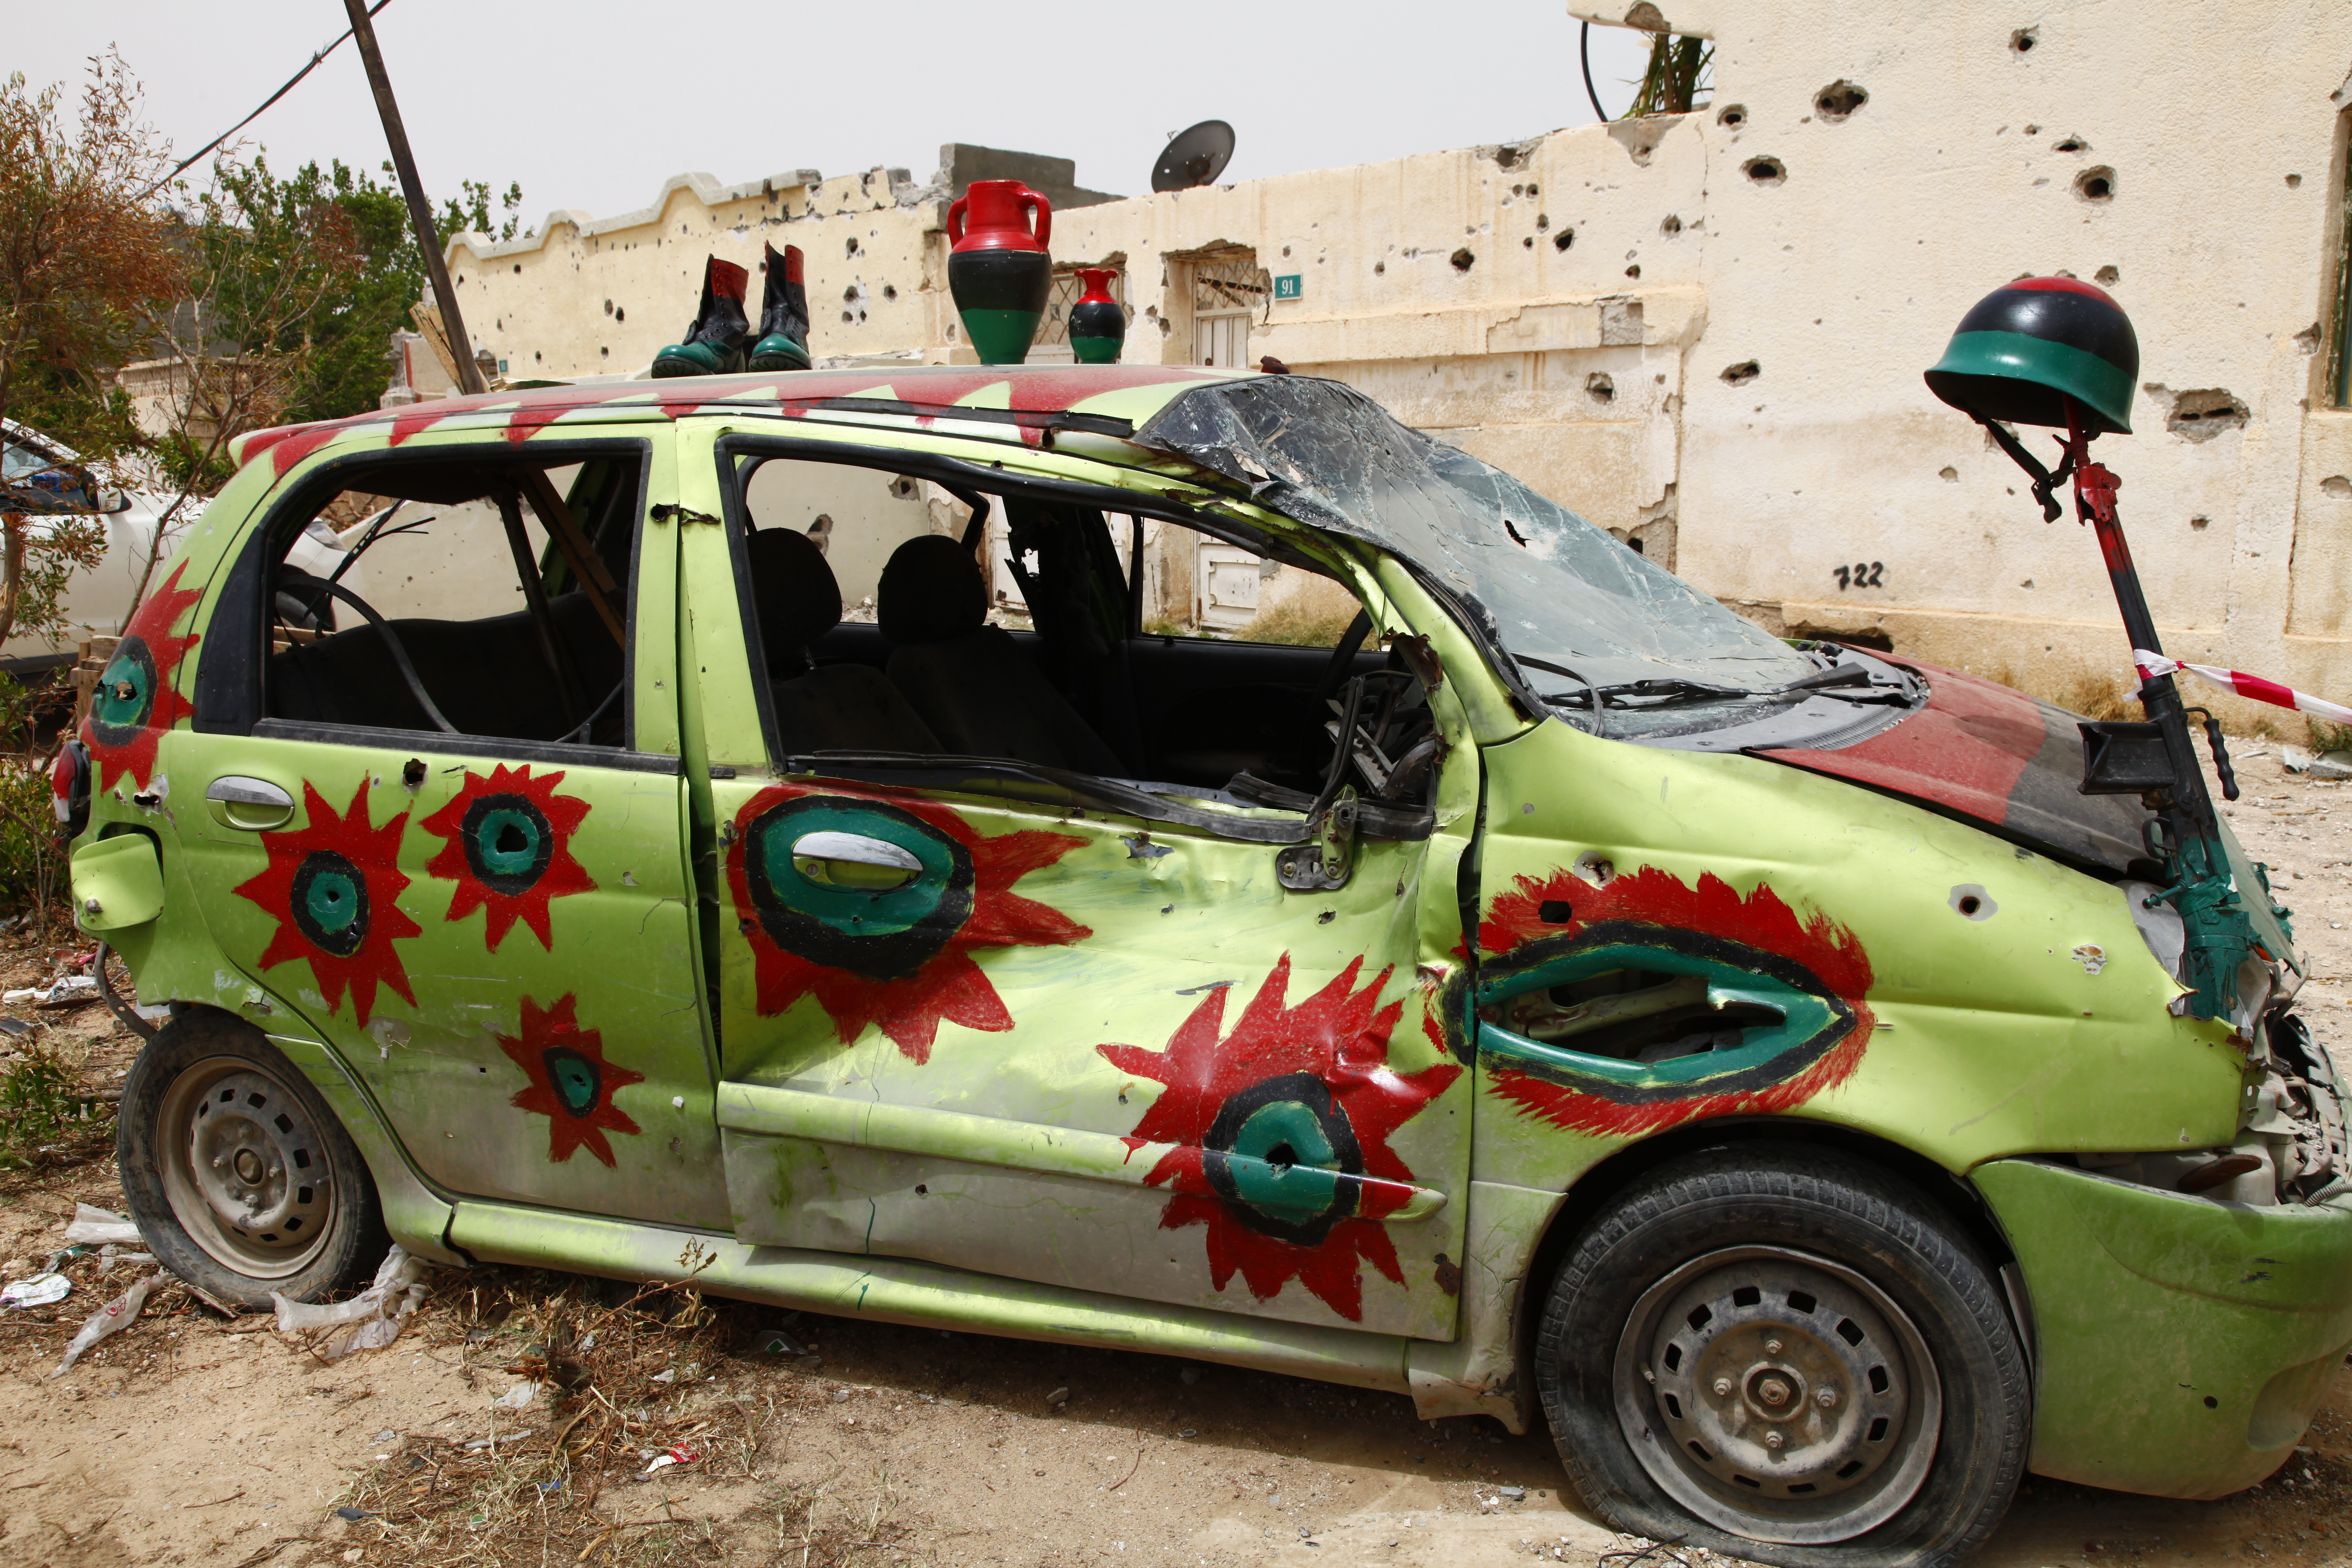 A war car painted with colours of the Libyan flag, Misrata, 2011 Credit: Flickr/ mojomogwai